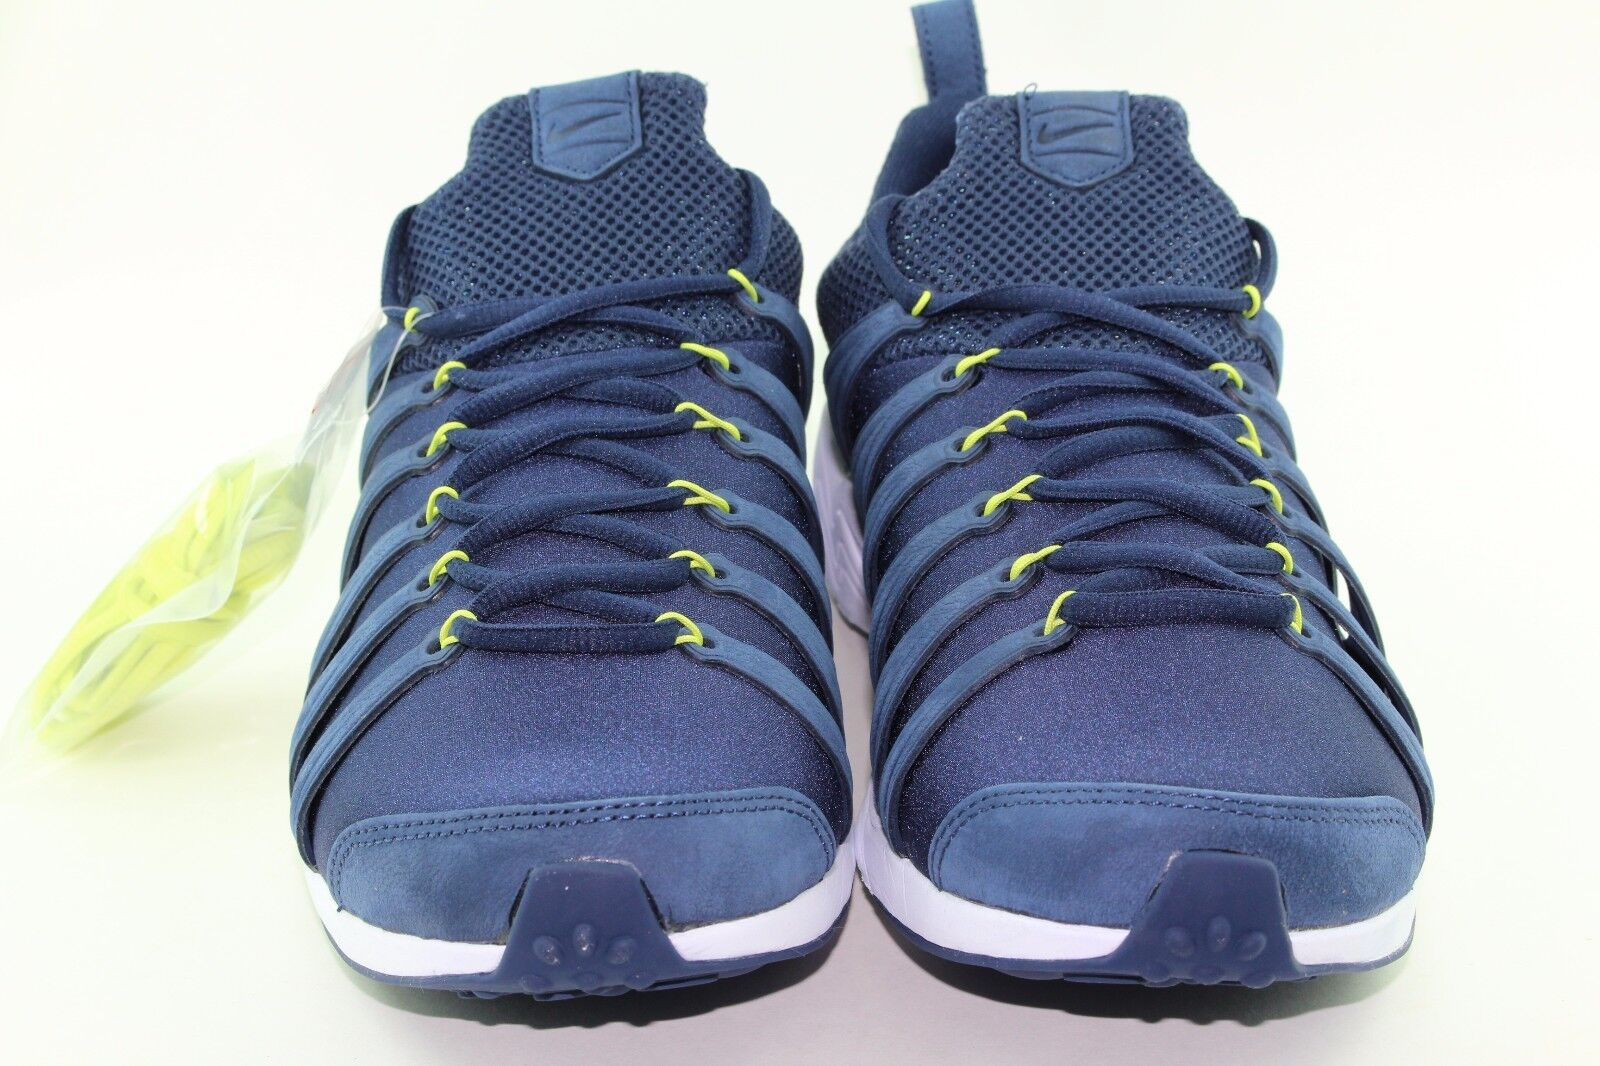 NIKE LAB AIR AIR AIR ZOOM SPIRIMIC MEN SIZE 11.0 MIDNIGHT NAVY NEW RARE LIGHT AUTHENTIC 9b4efb